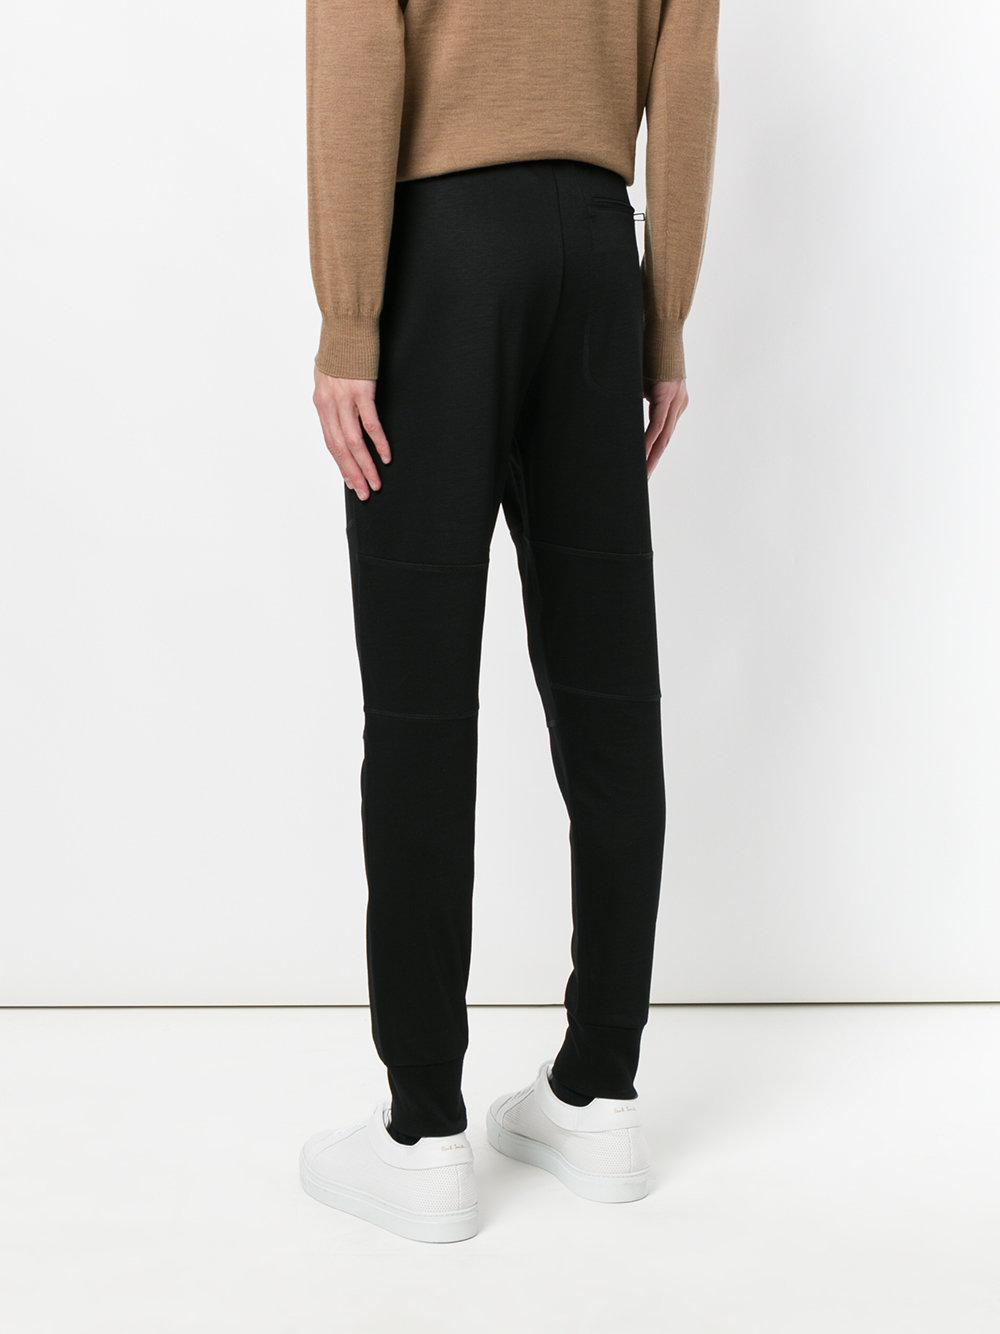 PS by Paul Smith Cotton Slim-leg Tracksuit Bottoms in Black for Men